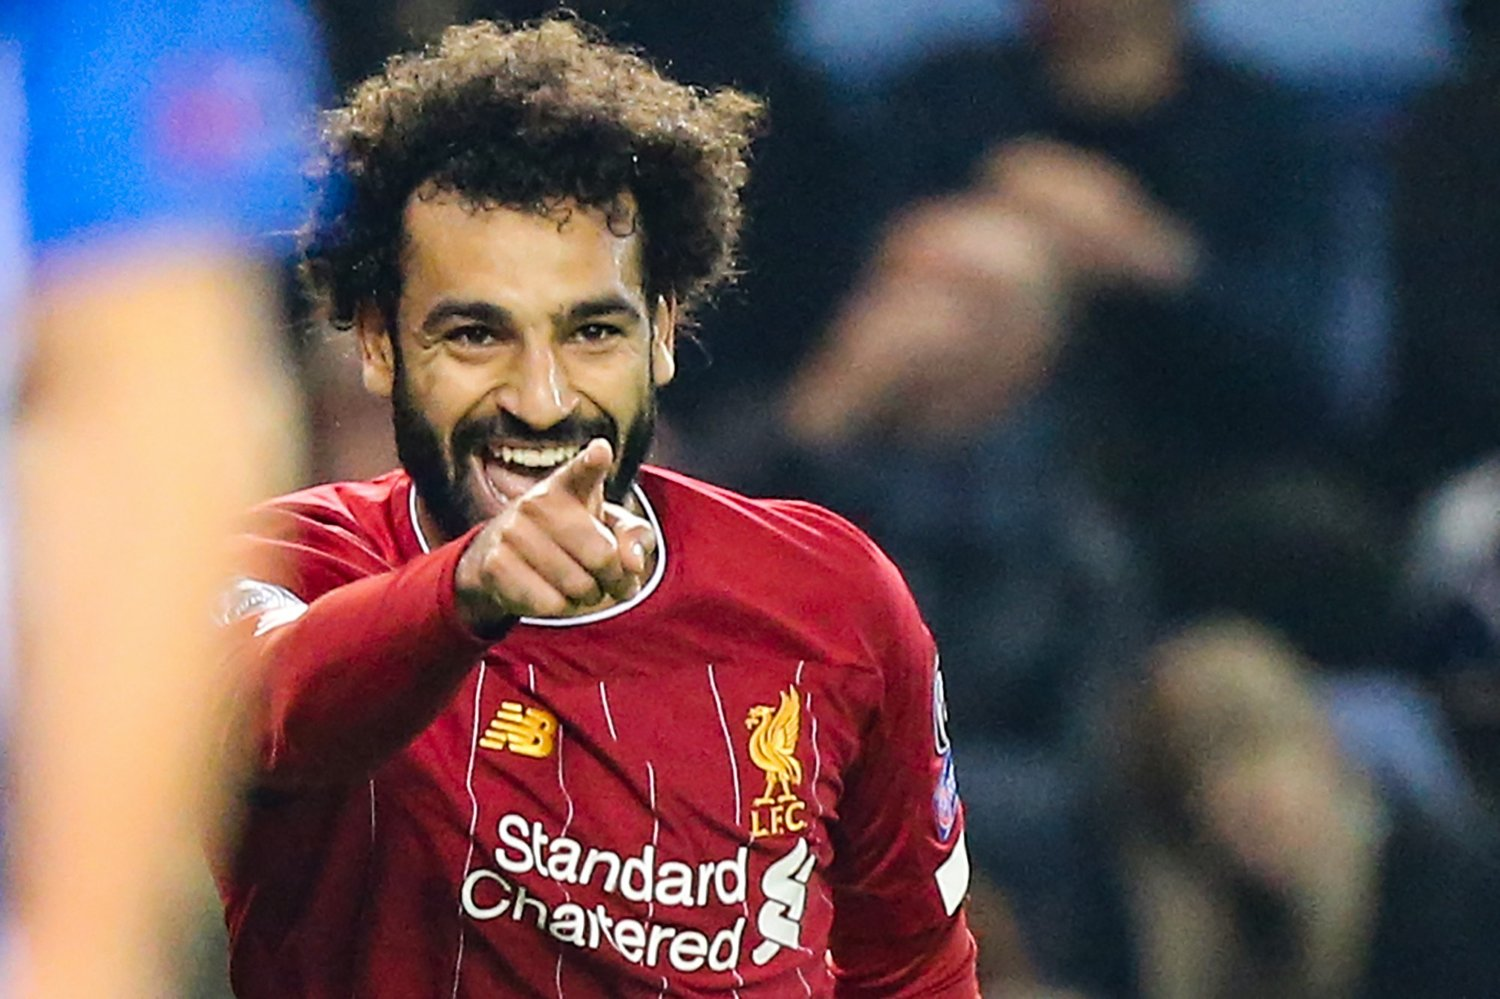 Liverpool's Egyptian midfielder Mohamed Salah celebrates after scoring a goal during the UEFA Champions League Group E football match between